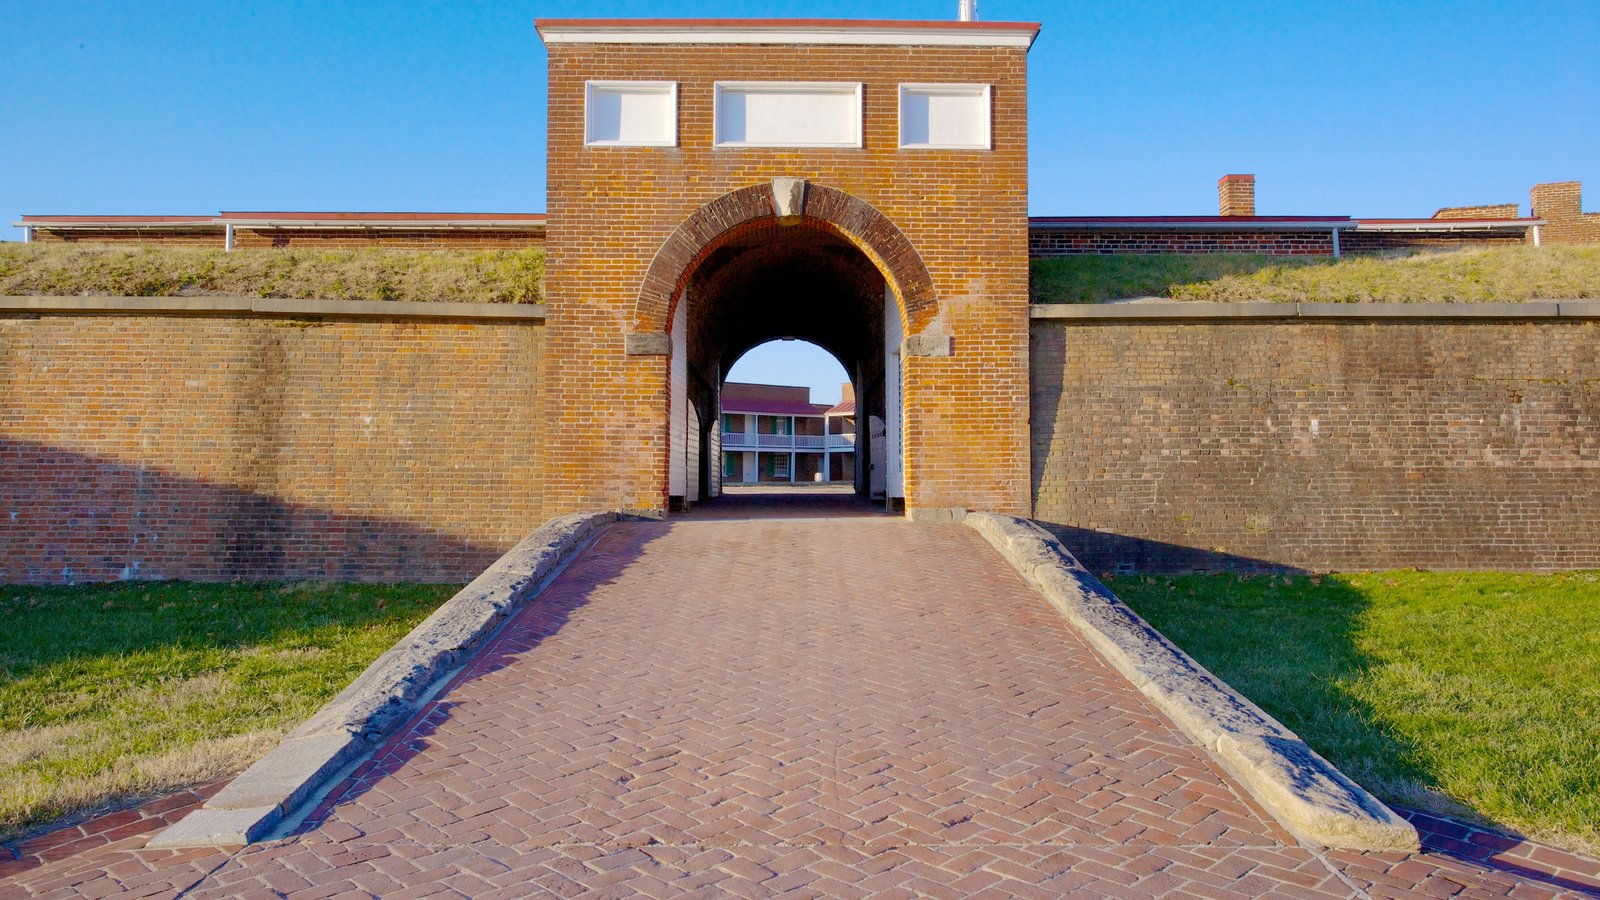 Fort McHenry featuring heritage architecture